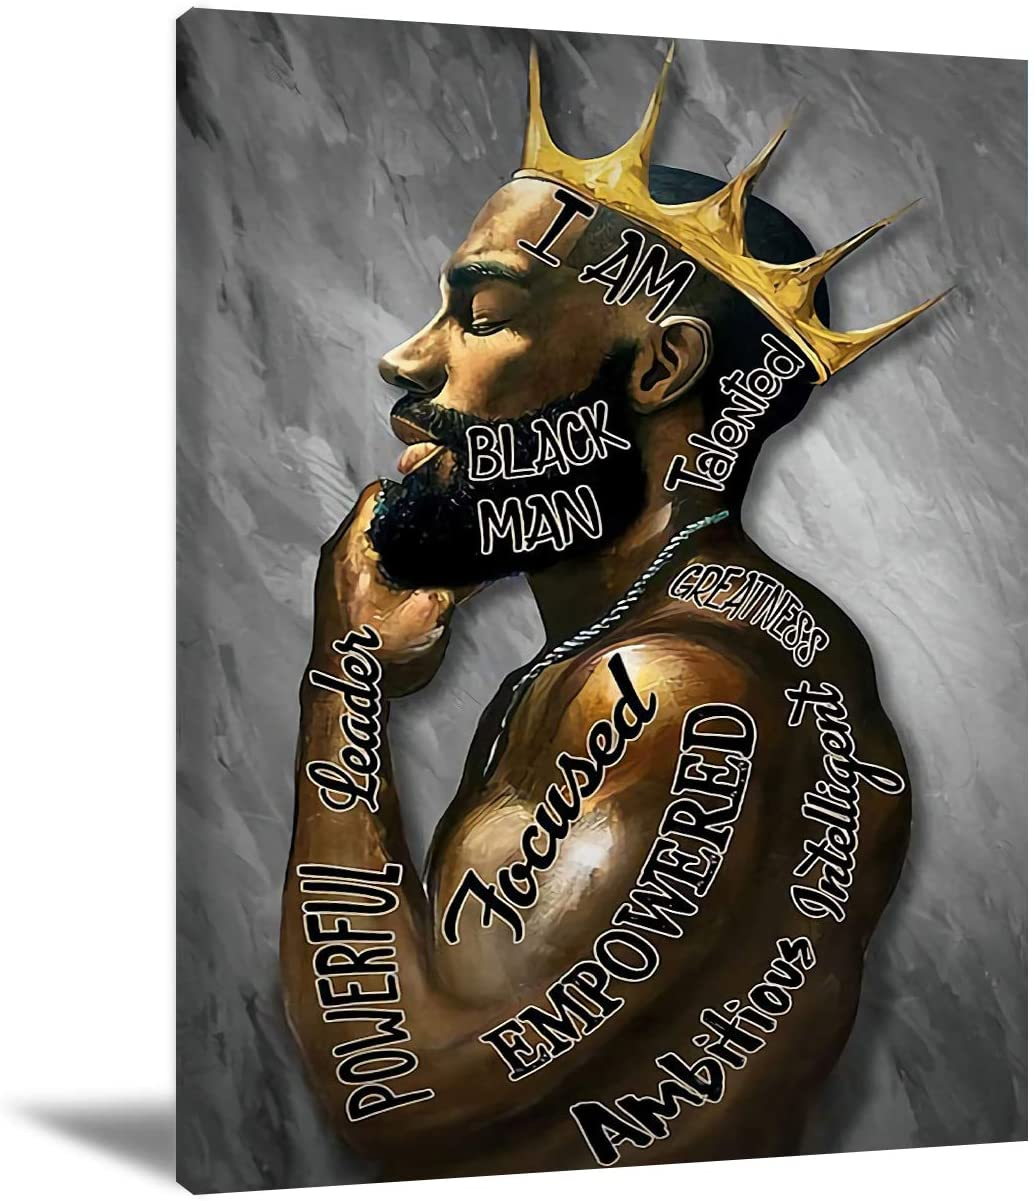 Black Men Wall Art African American Men Portrait Wall Art Black Men I Am Enough Art Afro King Poster Abstract Contemporary Canvas Prints Painting Home Decor For Bedroom Living Room 16X24 inch